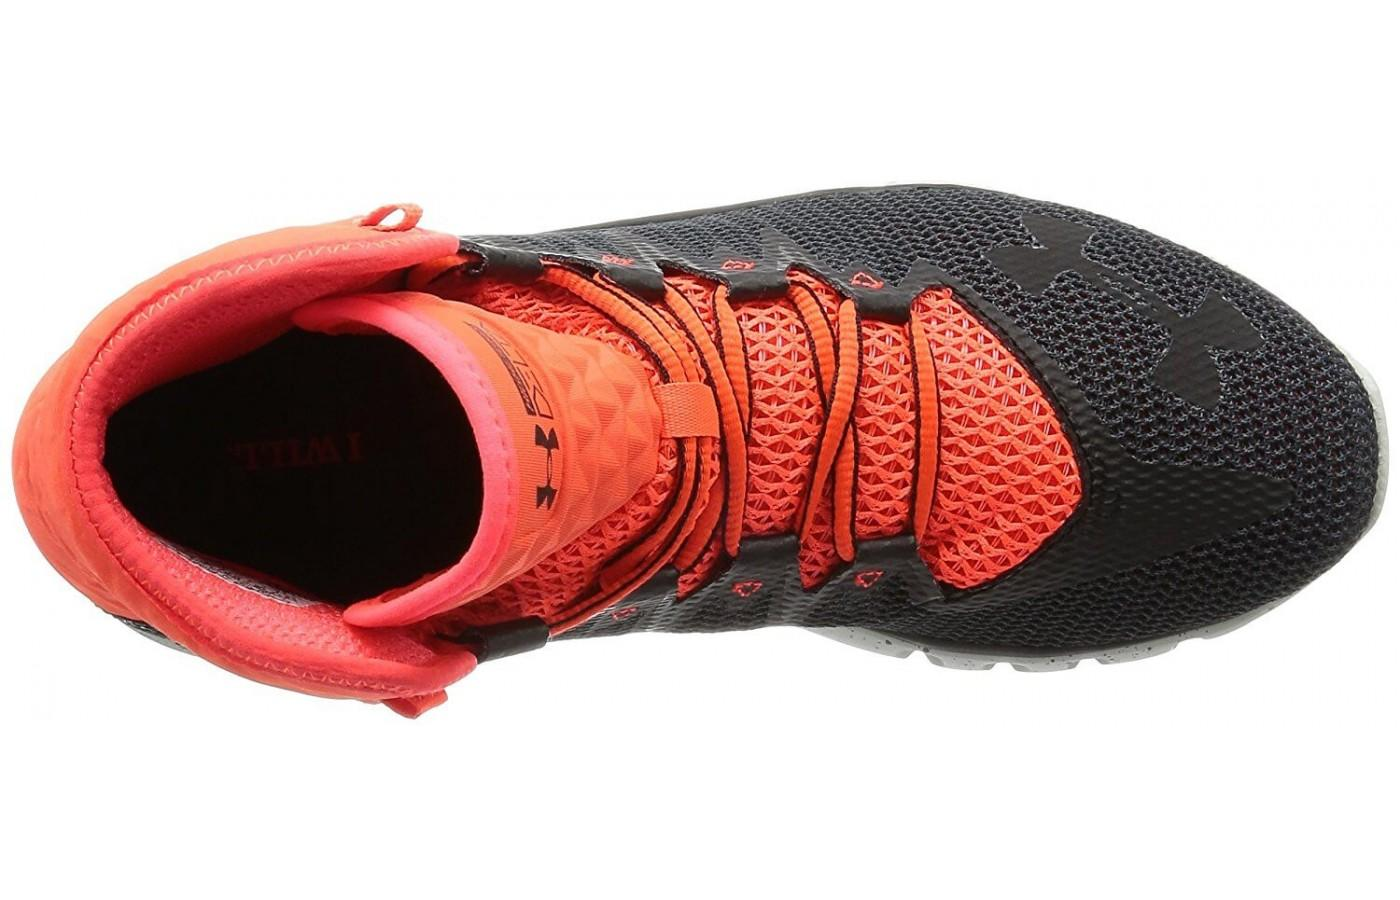 A view of the Under Armour Delta Highlight from directly above.